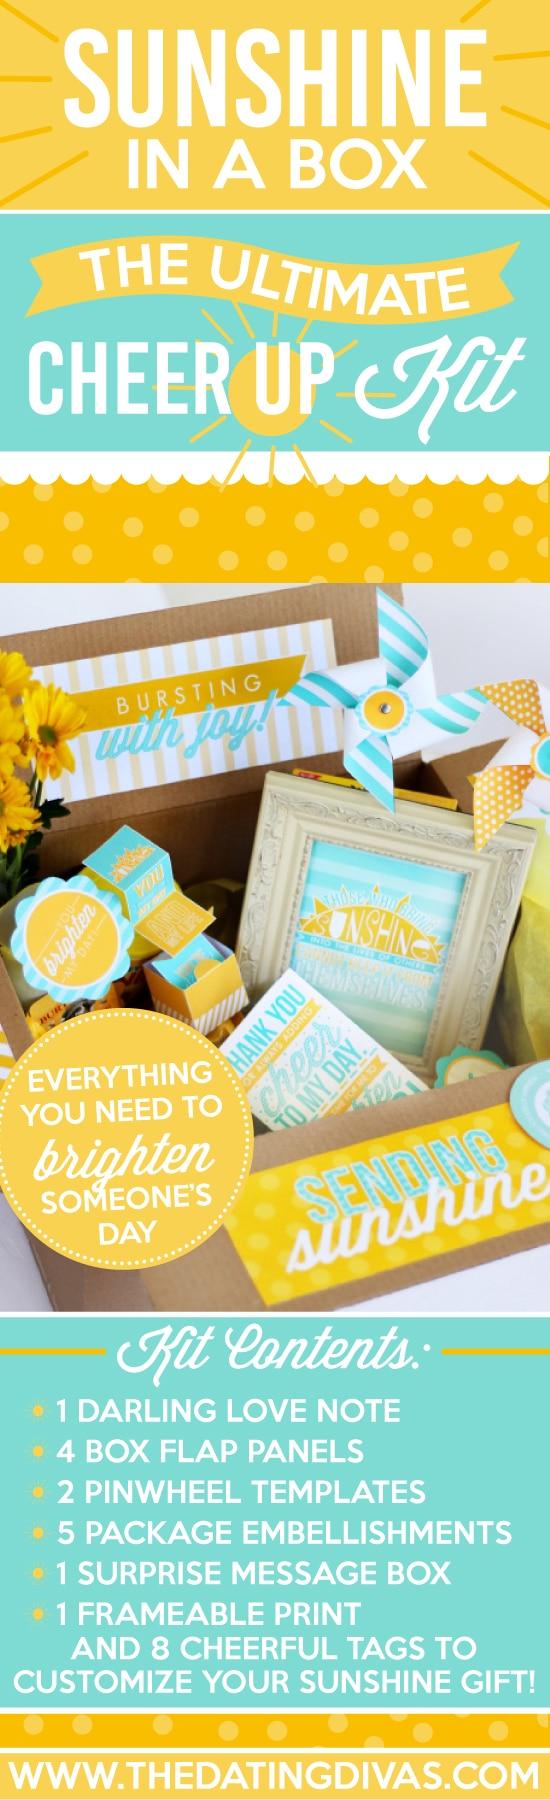 Cheer up kit care package printables... So great to have on hand! #TheDatingDivas #CarePackage